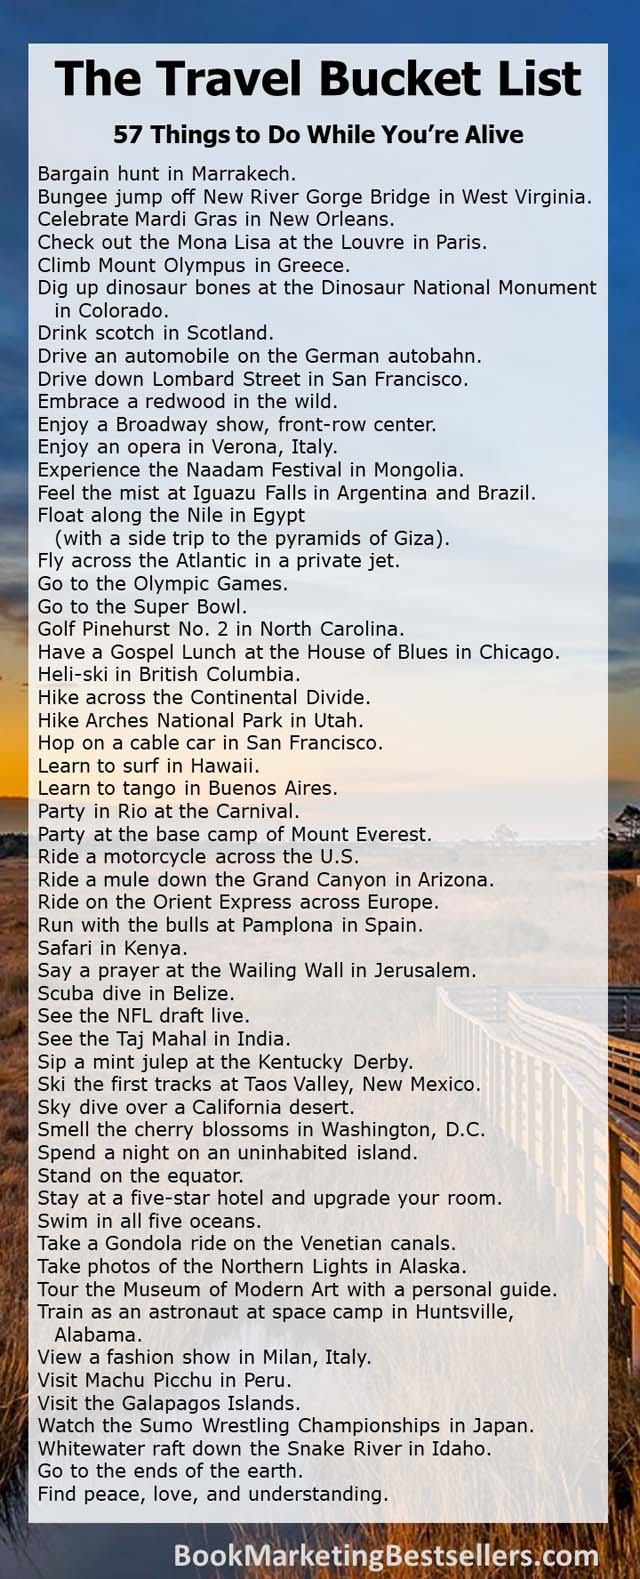 The Travel Bucket List: 57 things to do while you're alive - Check out this travel bucket list inspired by some old Visa Signature advertisements. How many of these 57 things to do while you're alive have you done?